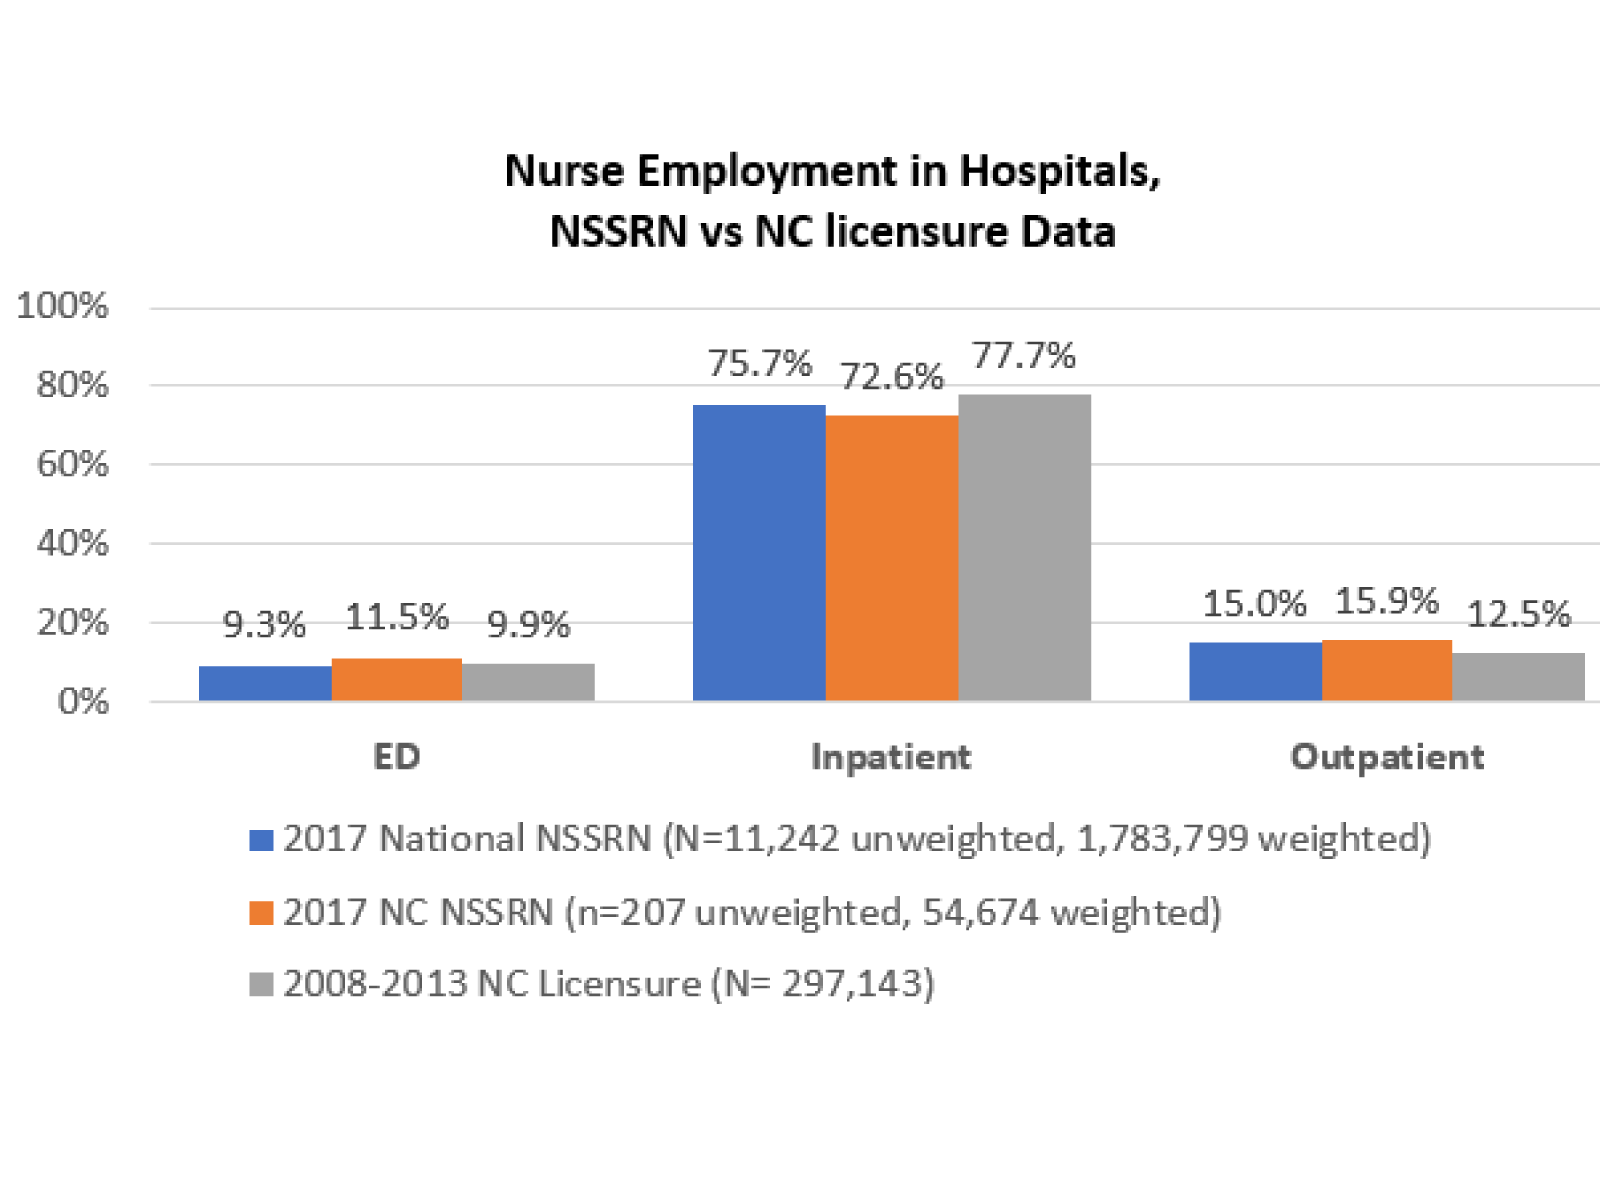 Comparing Hospital Nurse Settings from the 2018 NSSRN vs. 2008-2013 North Carolina Licensure Data